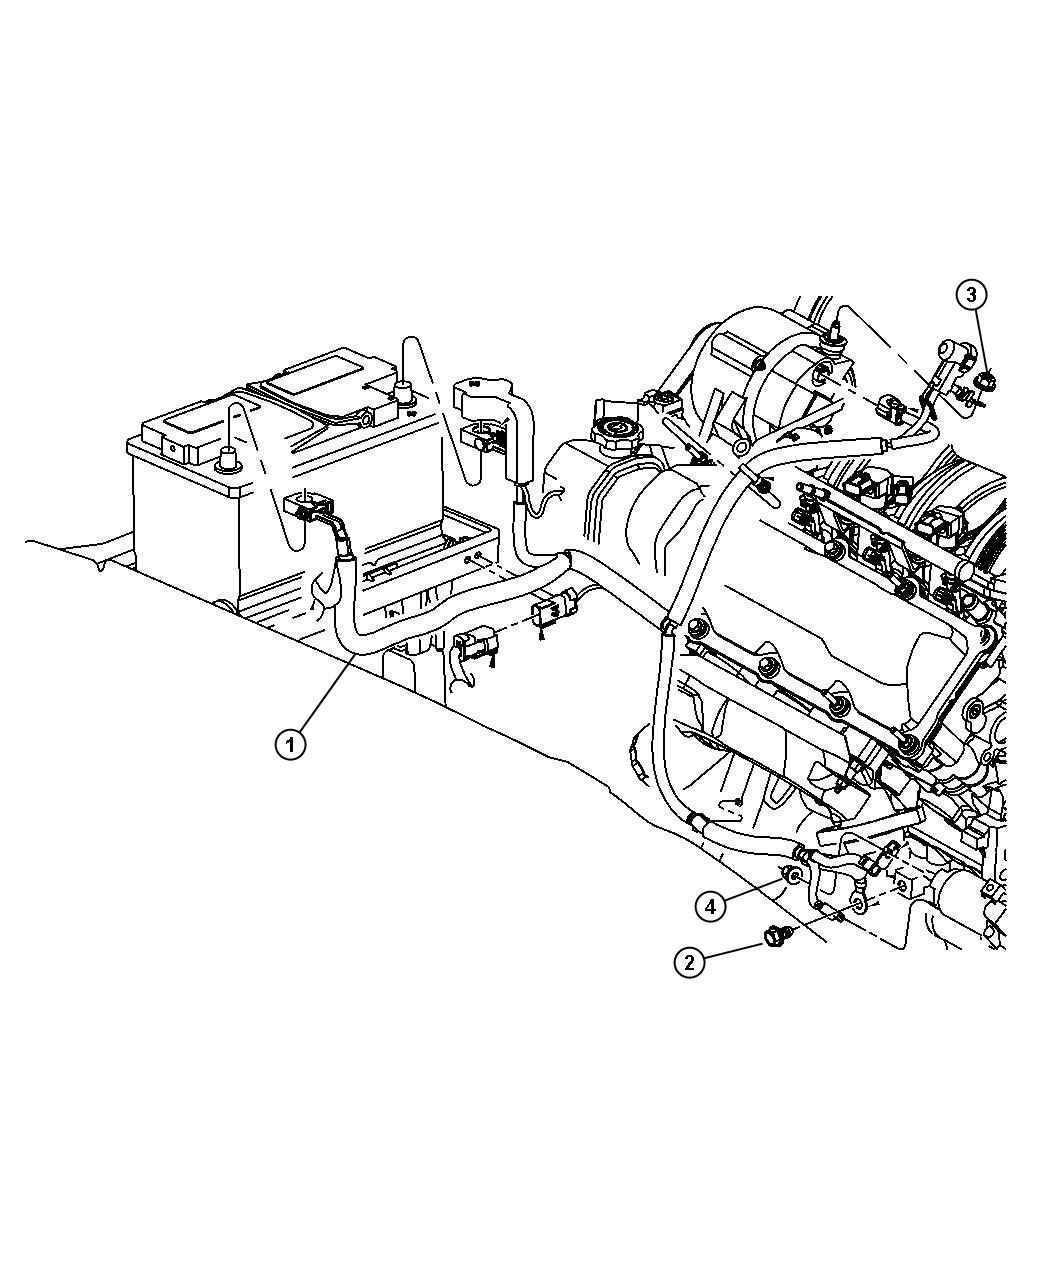 Jeep Commander Wiring Used For Alternator And Battery